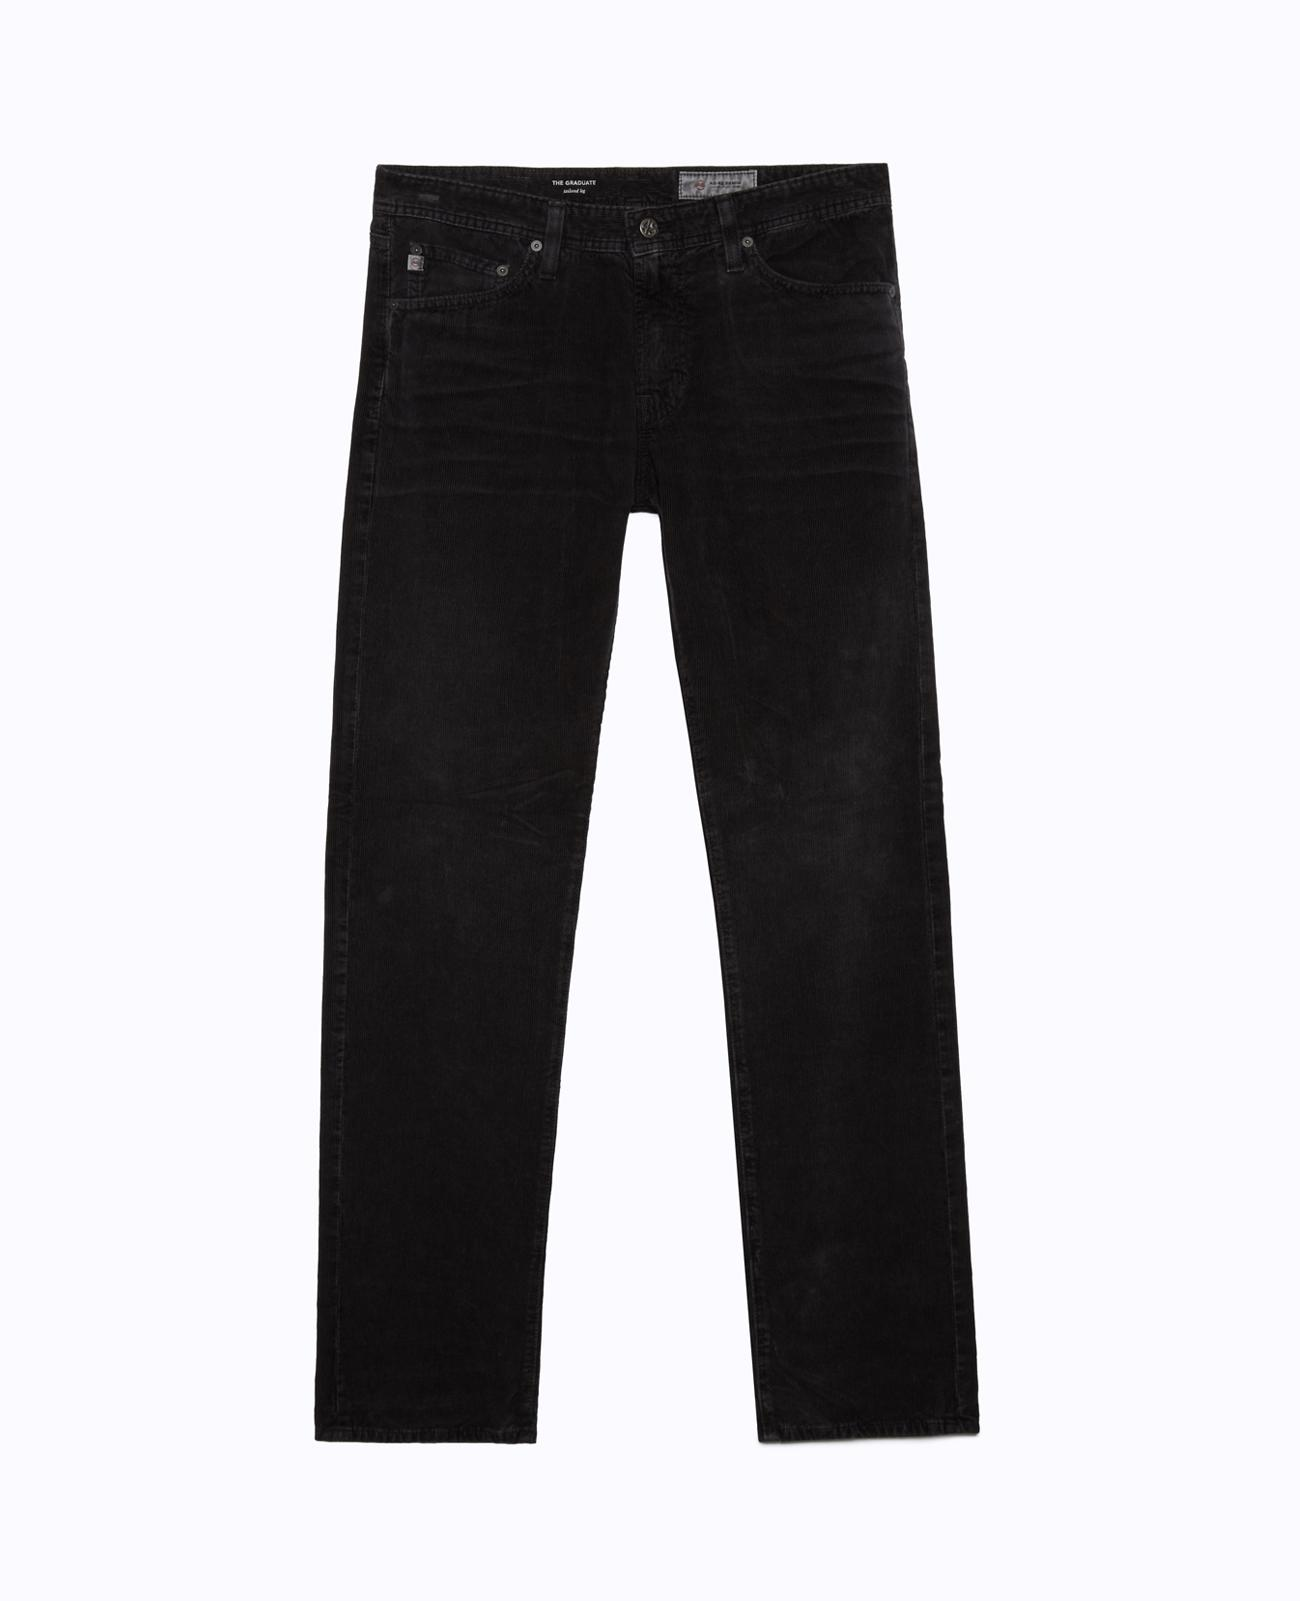 8984afdb1b4ea The Graduate In Sulfur Black Slim Straight Jeans AG Jeans Official Store